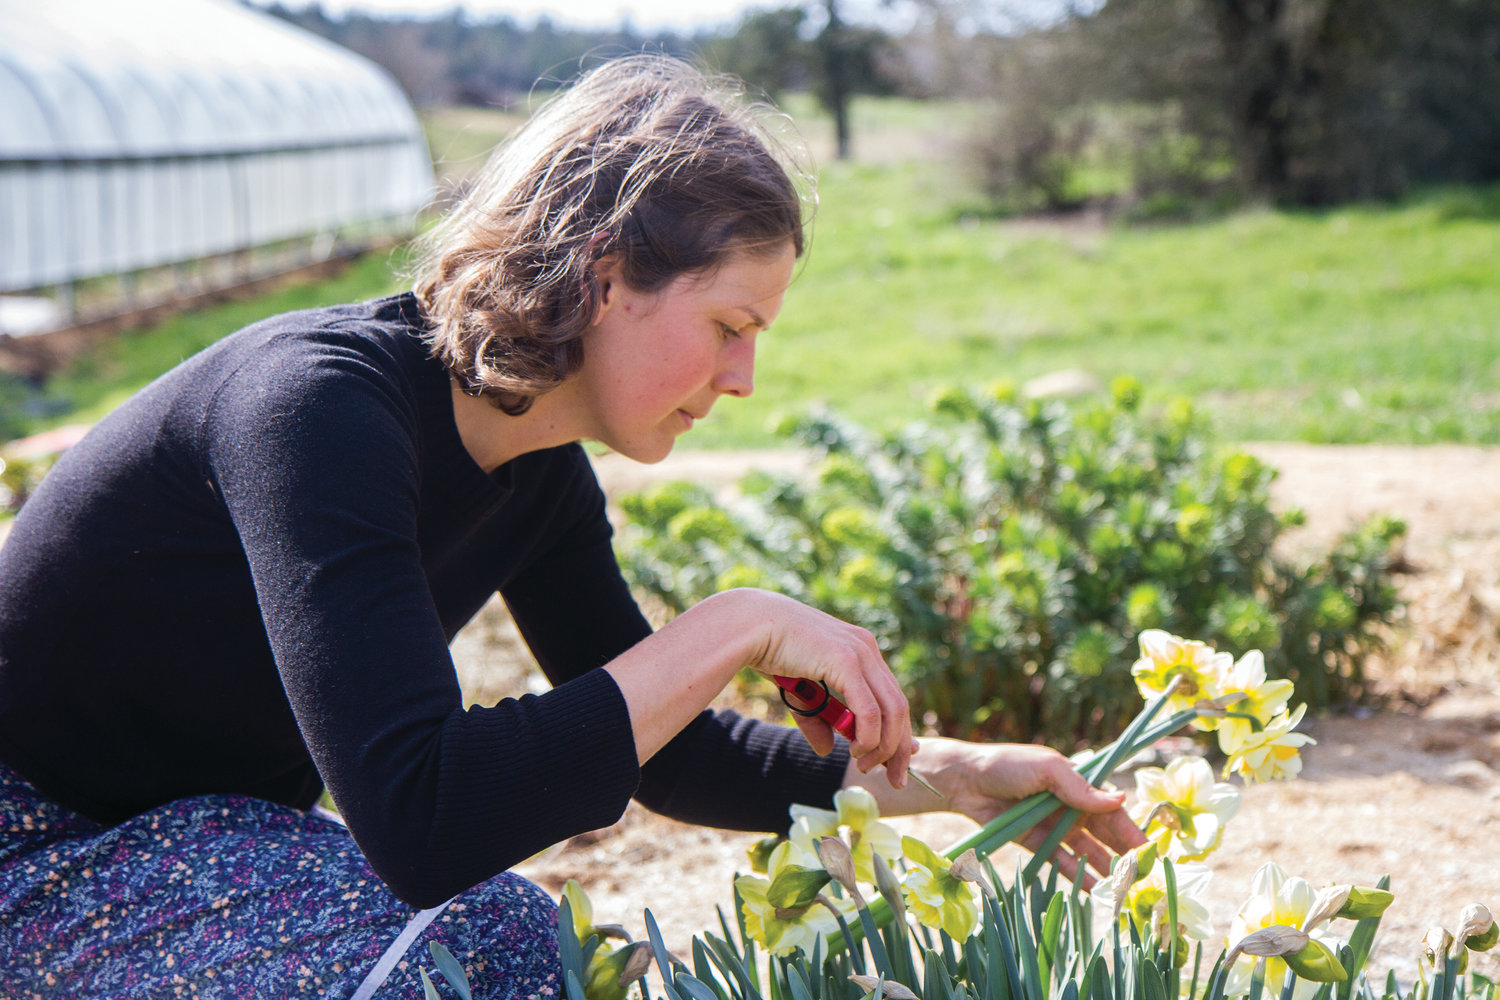 Allred harvests daffodils to make a bouquet. She grows her flowers in beds and does not use herbicides or pesticides.   LEADER PHOTO BY LILY HAIGHT, Posted Wednesday, April 24, 2019 3:00 am